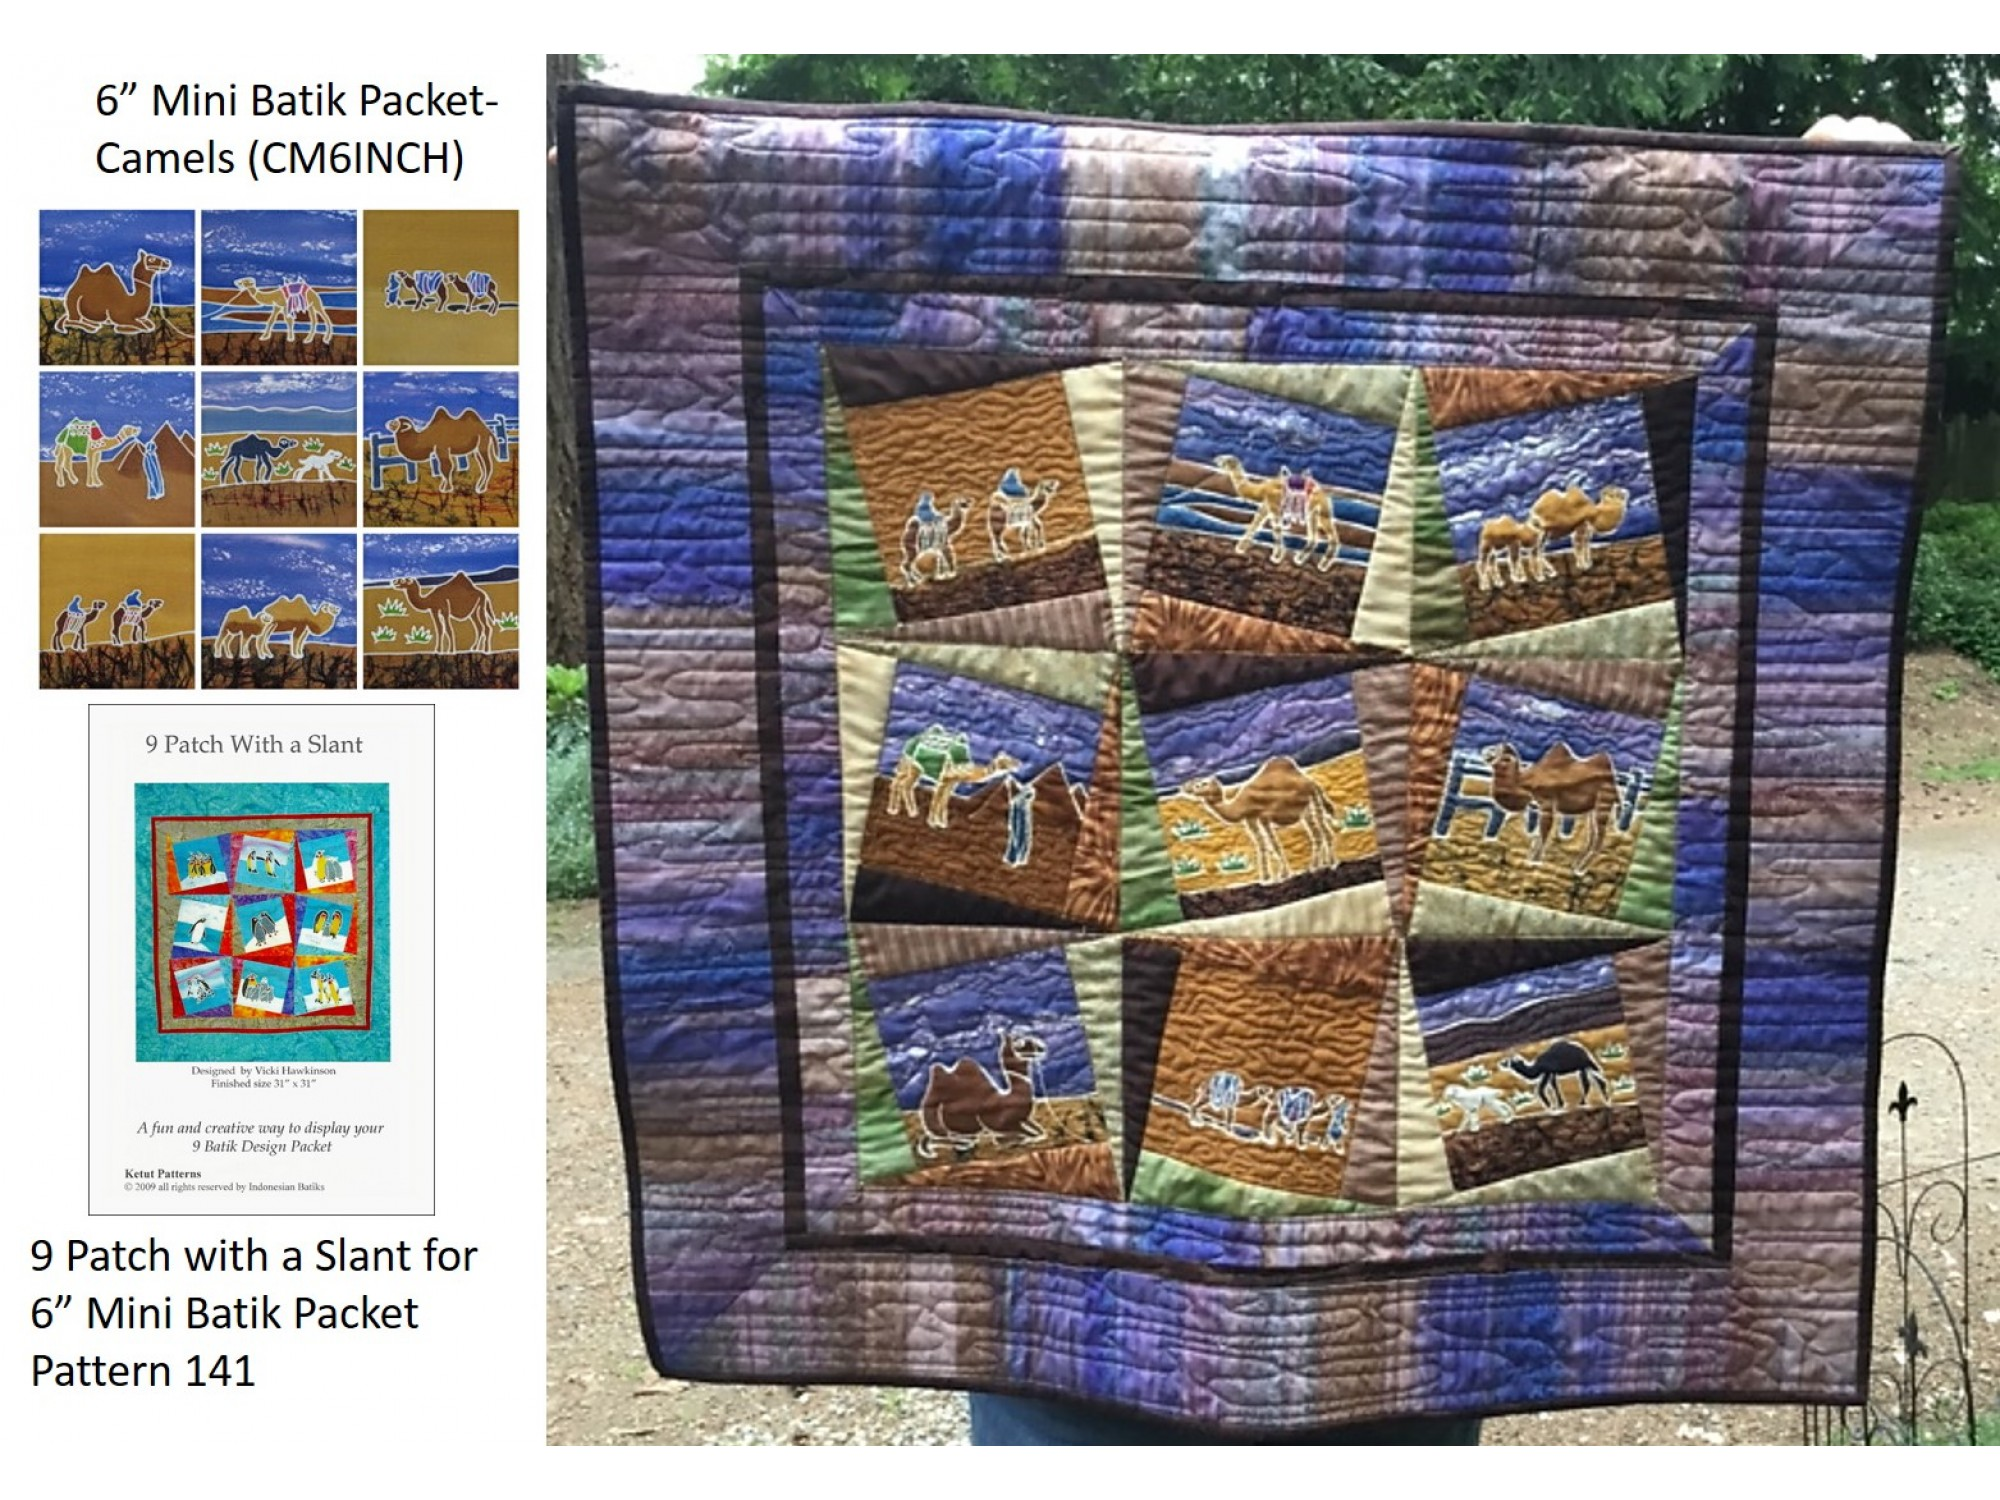 b6a19dcd12f0 Finished Camel Quilt